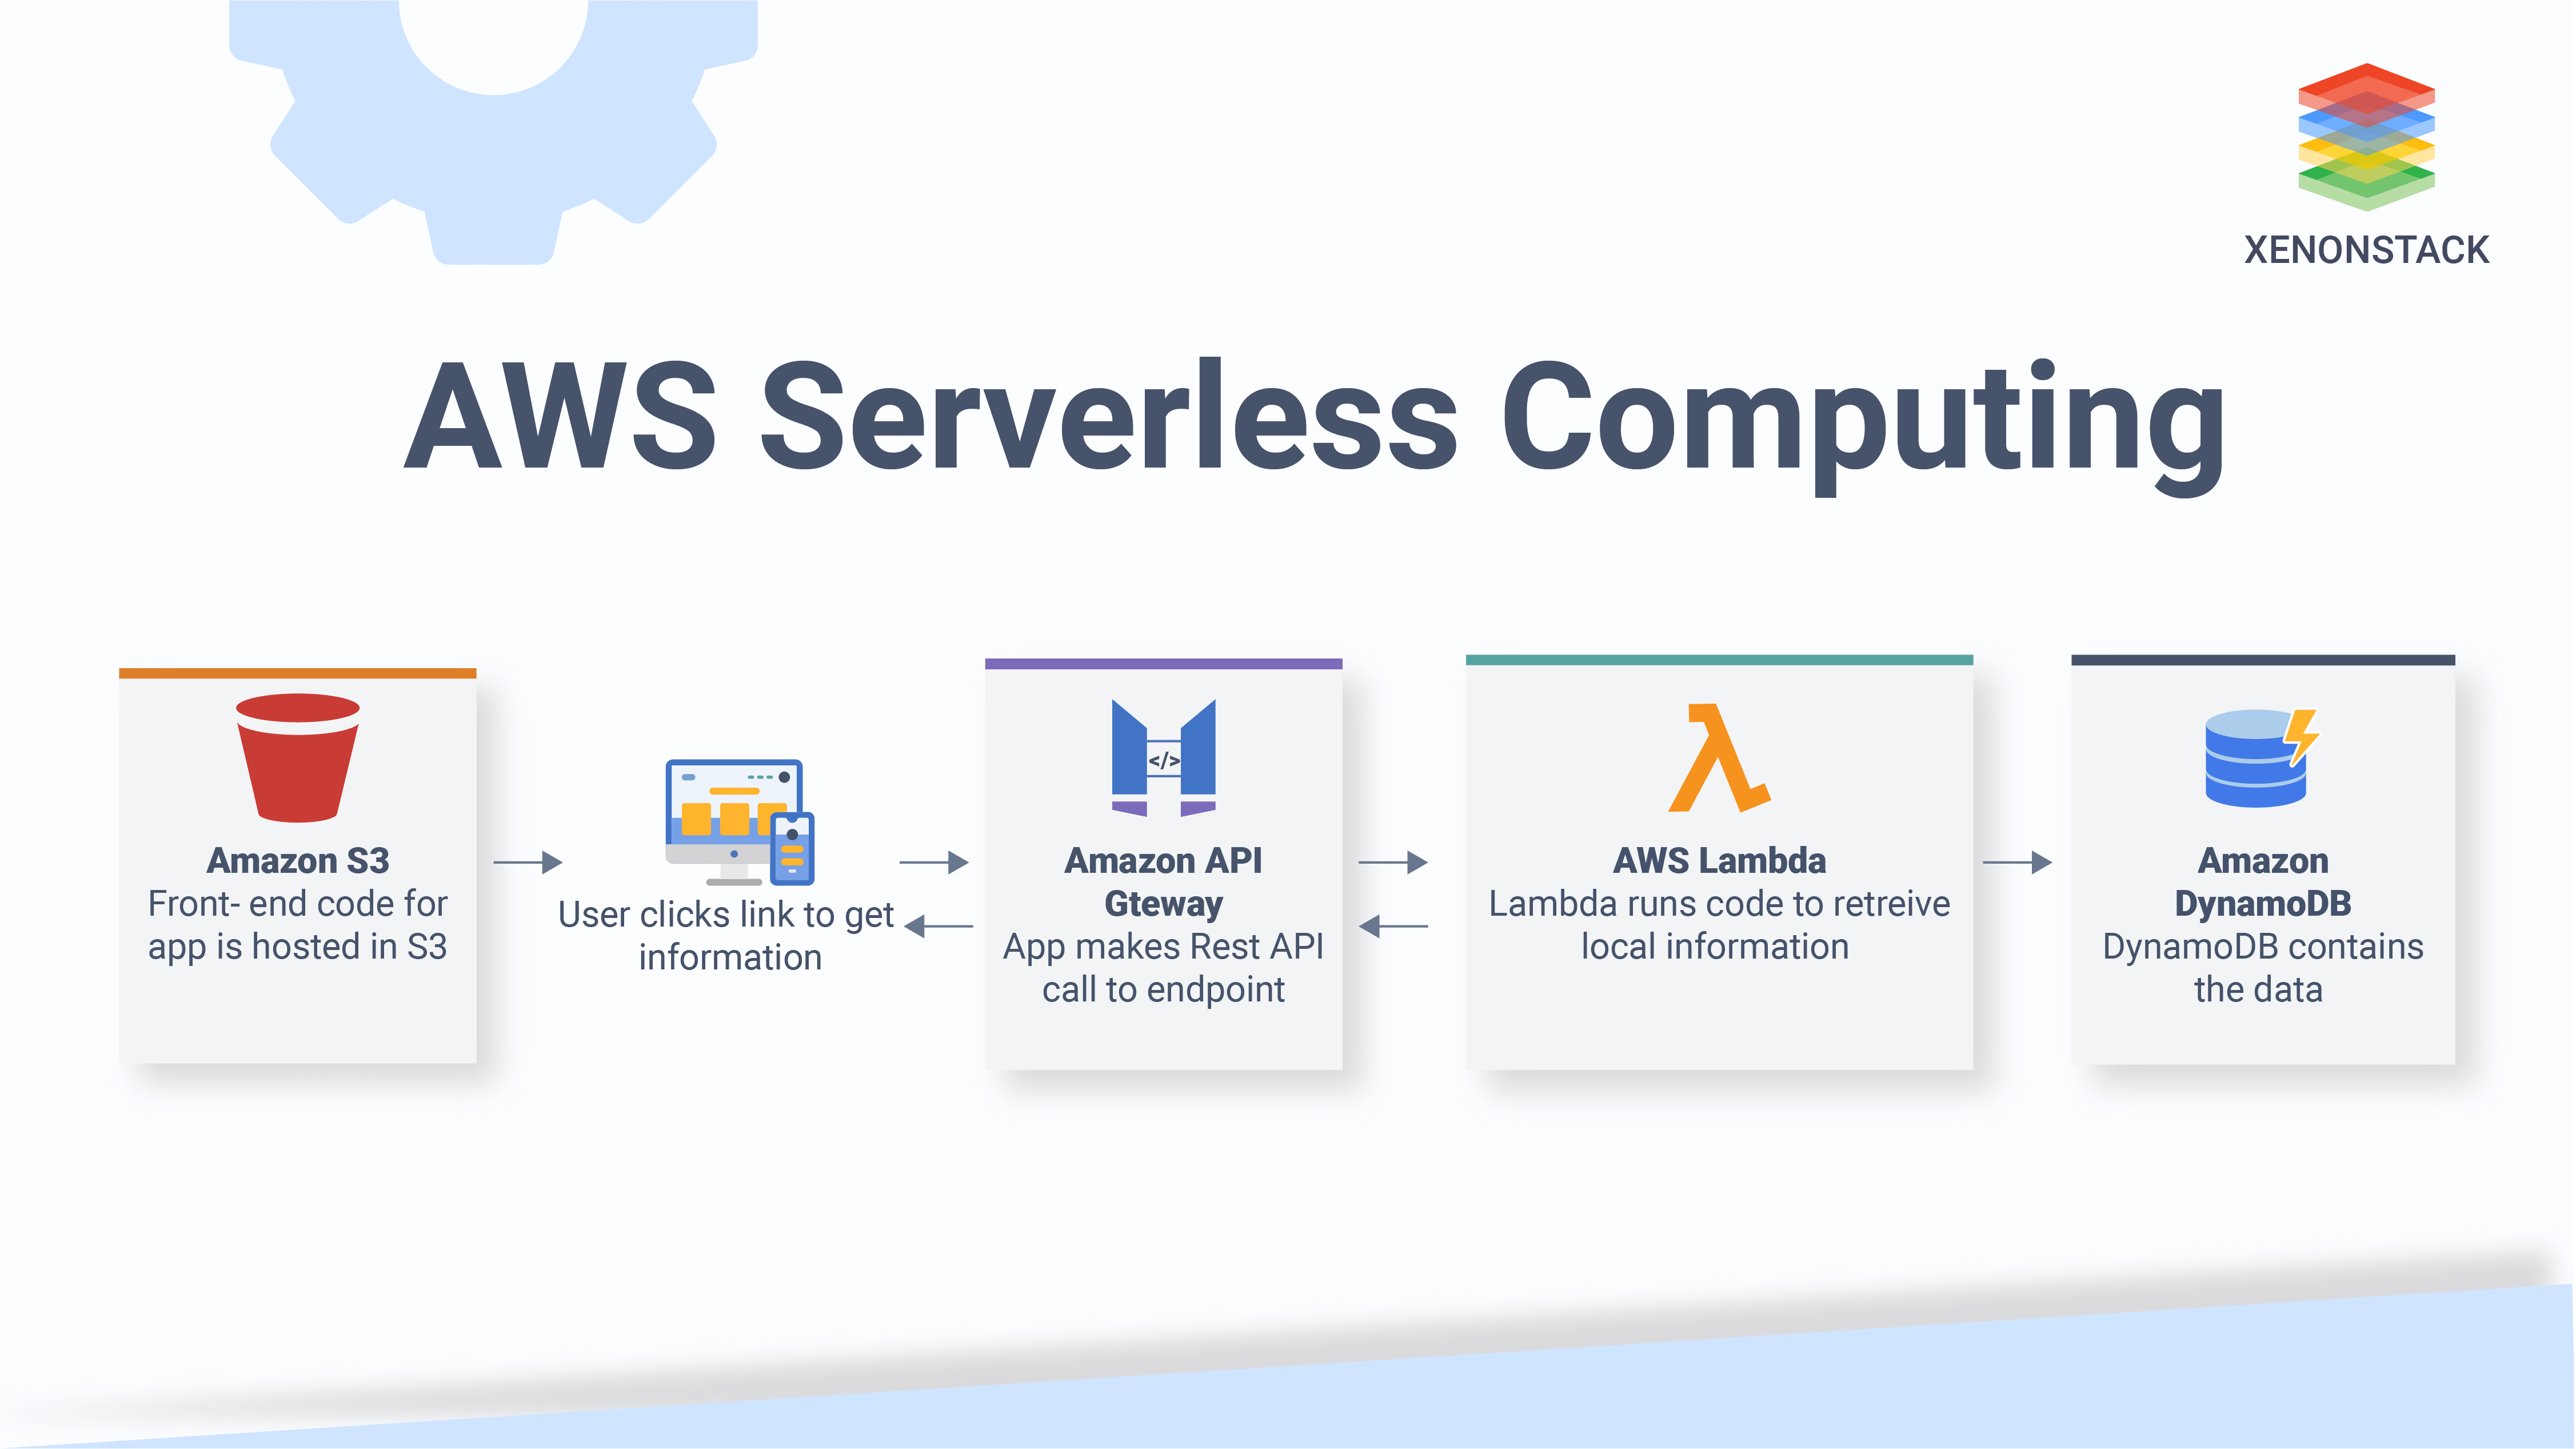 AWS Serverless Computing, Benefits, Architecture and Use-cases